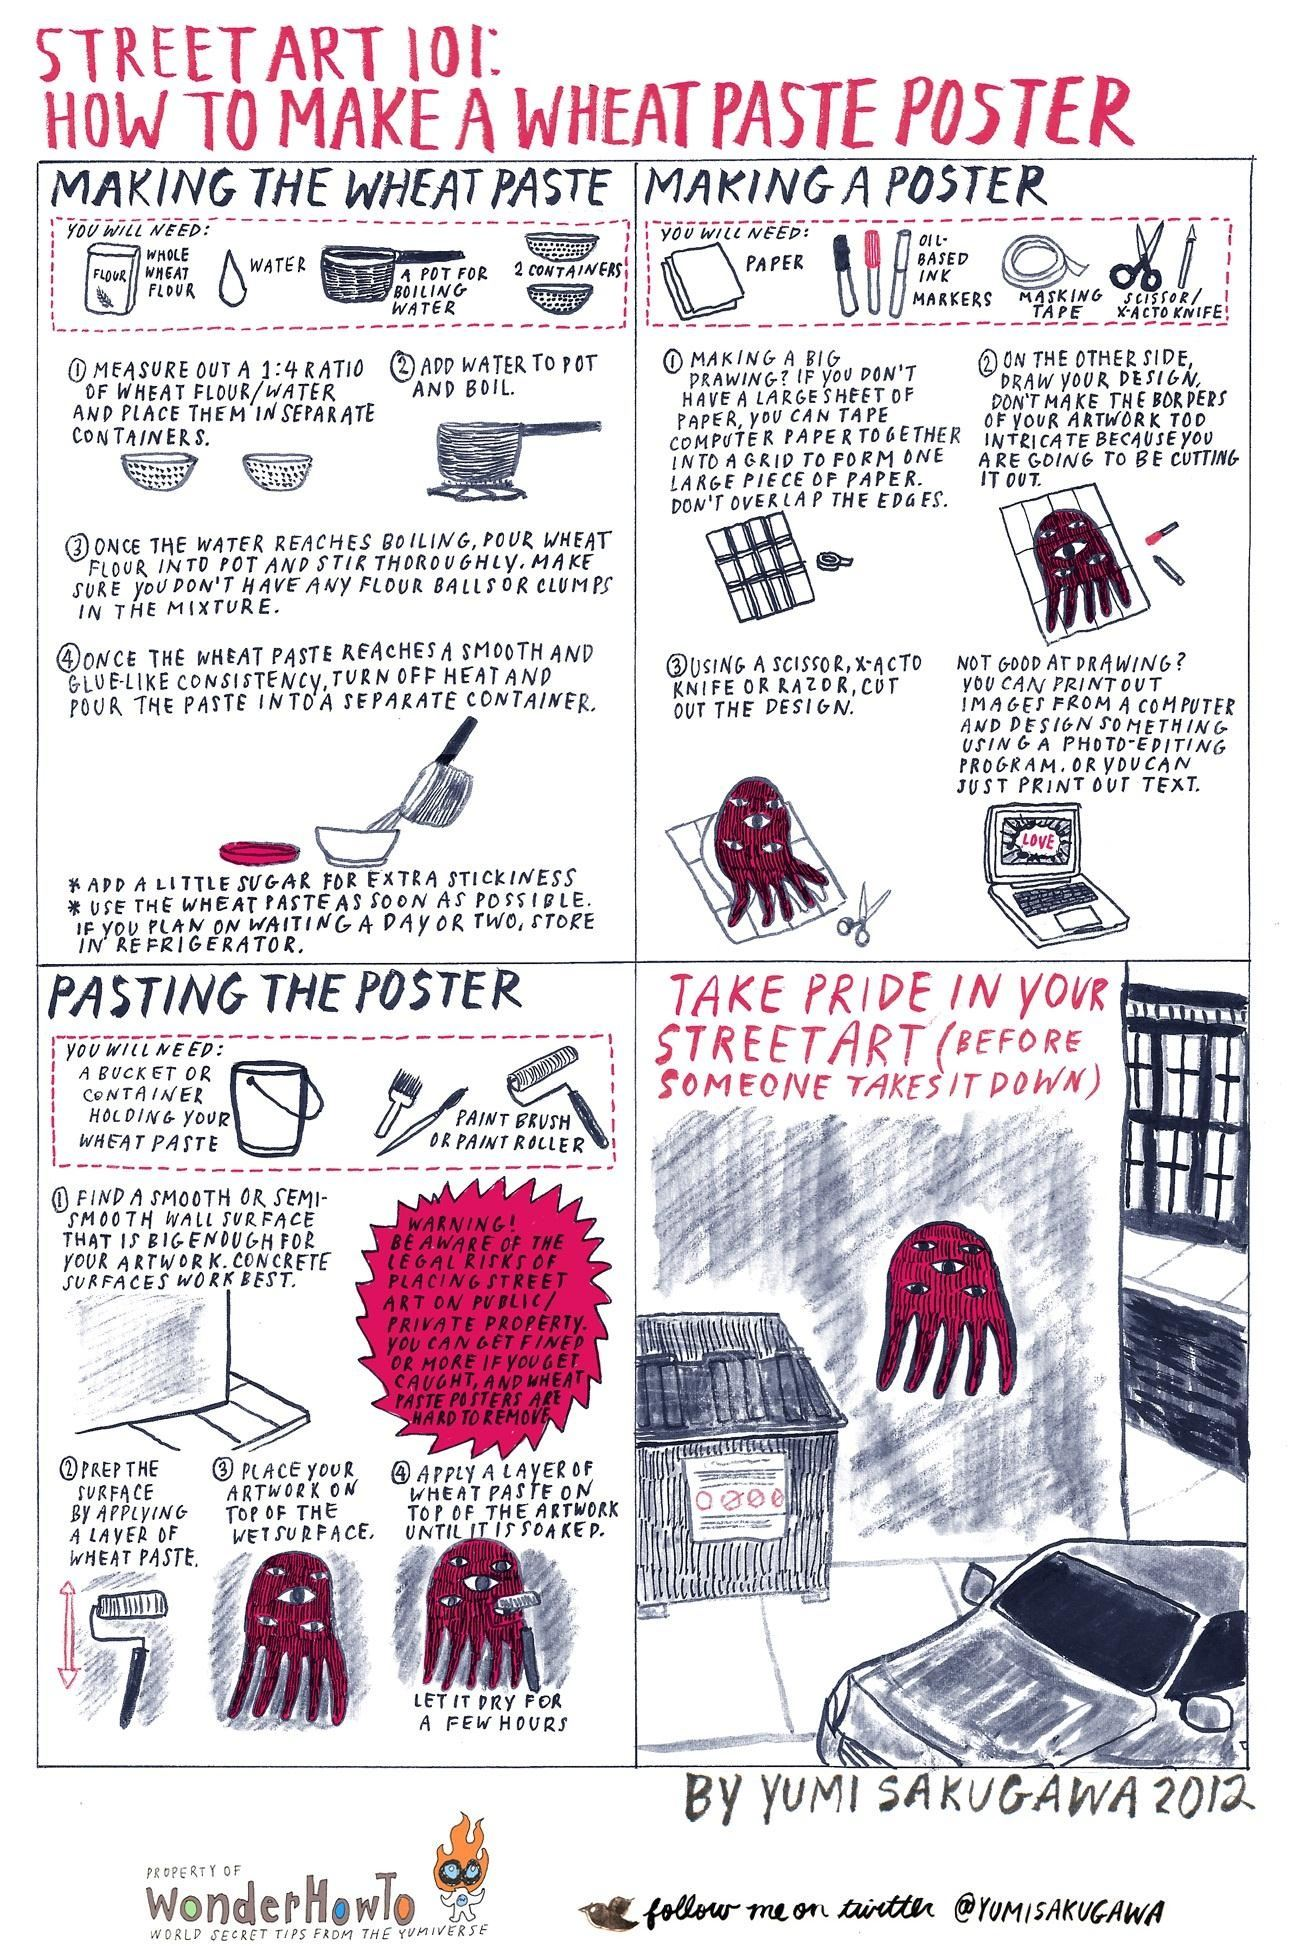 street art 101 how to make a wheatpaste poster the secret